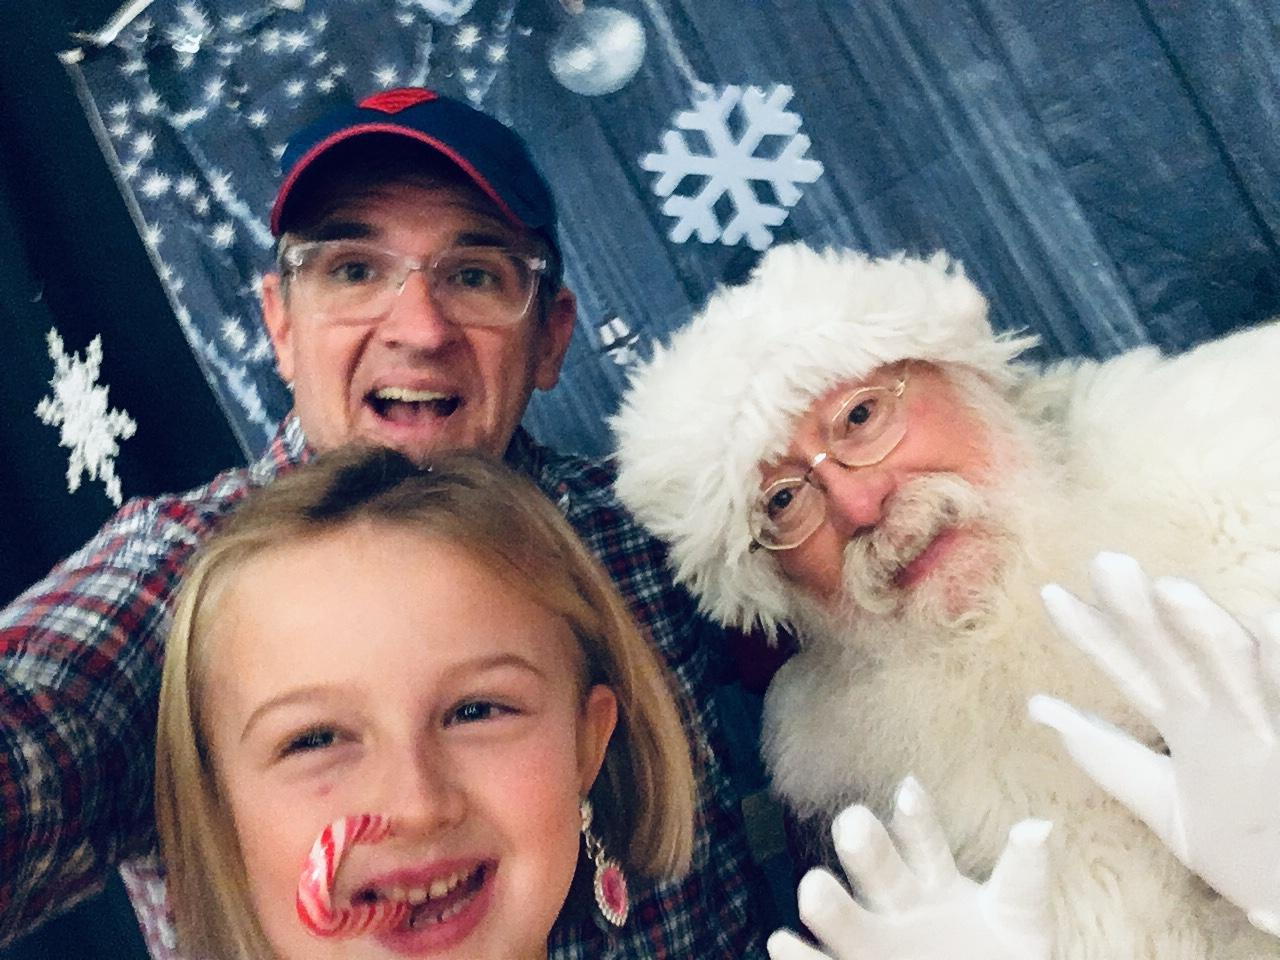 Mr. B., Eden Jane, and Santa